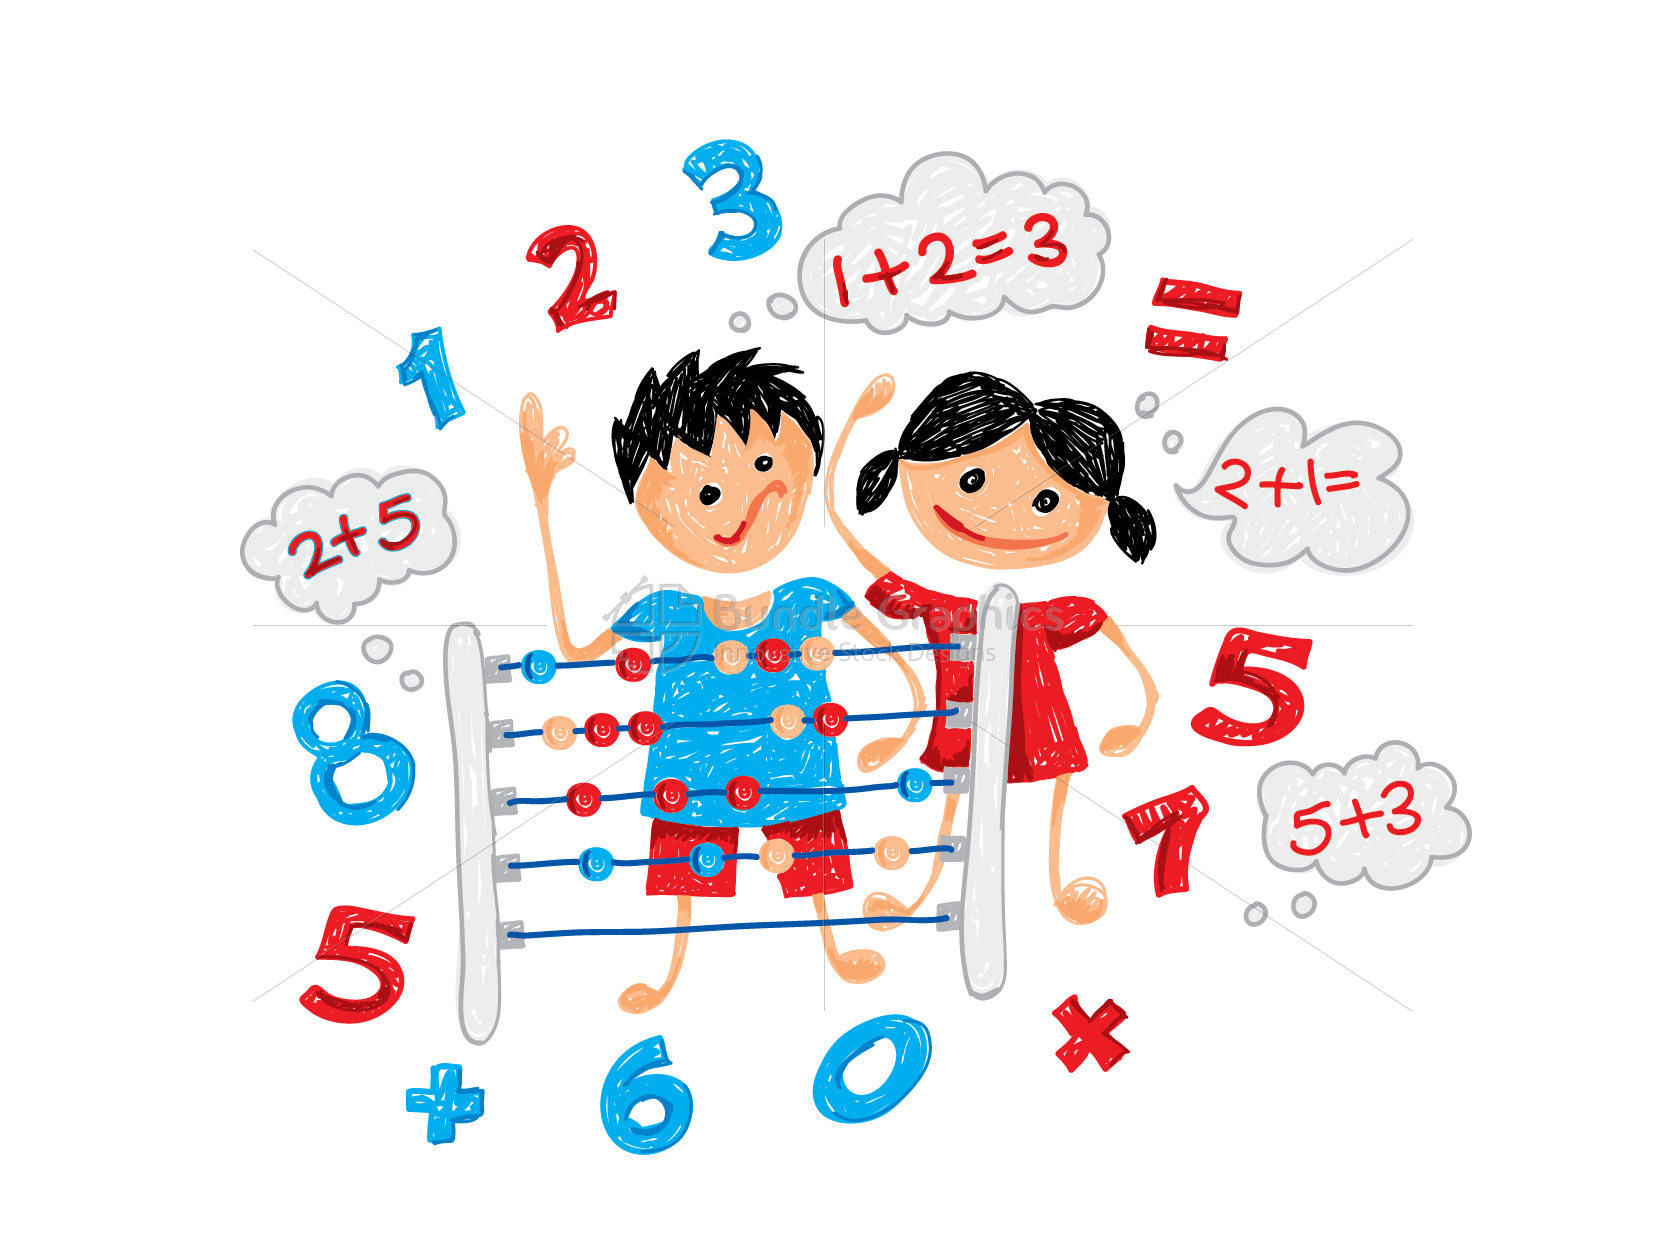 Primary Abacus Class Graphical Illustration example image 3